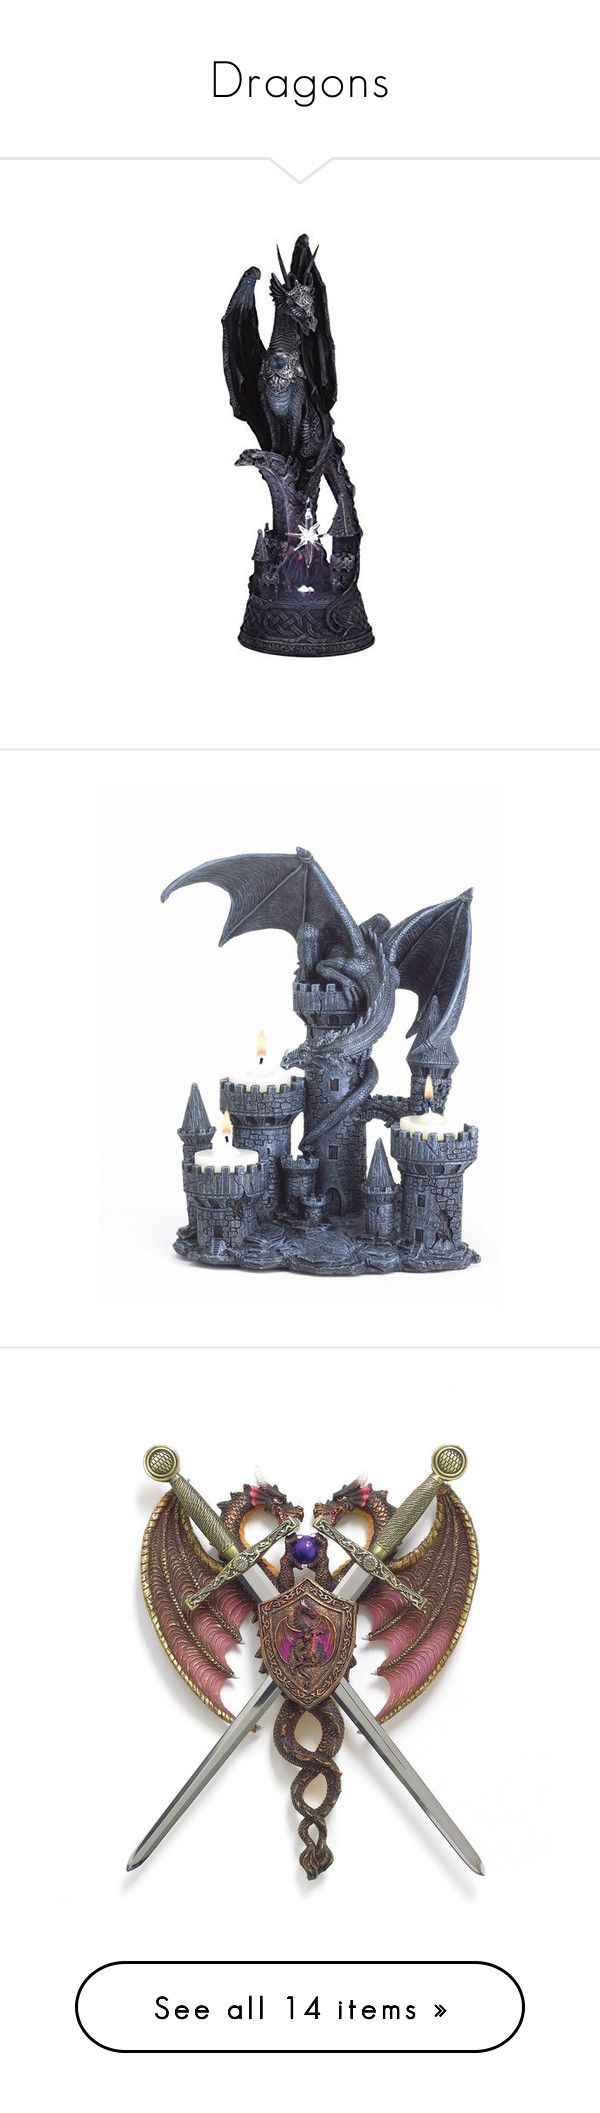 Dragons By Starrswhitedragon Liked On Polyvore Featuring Home Decor Crystal  Statue Dragon Figure